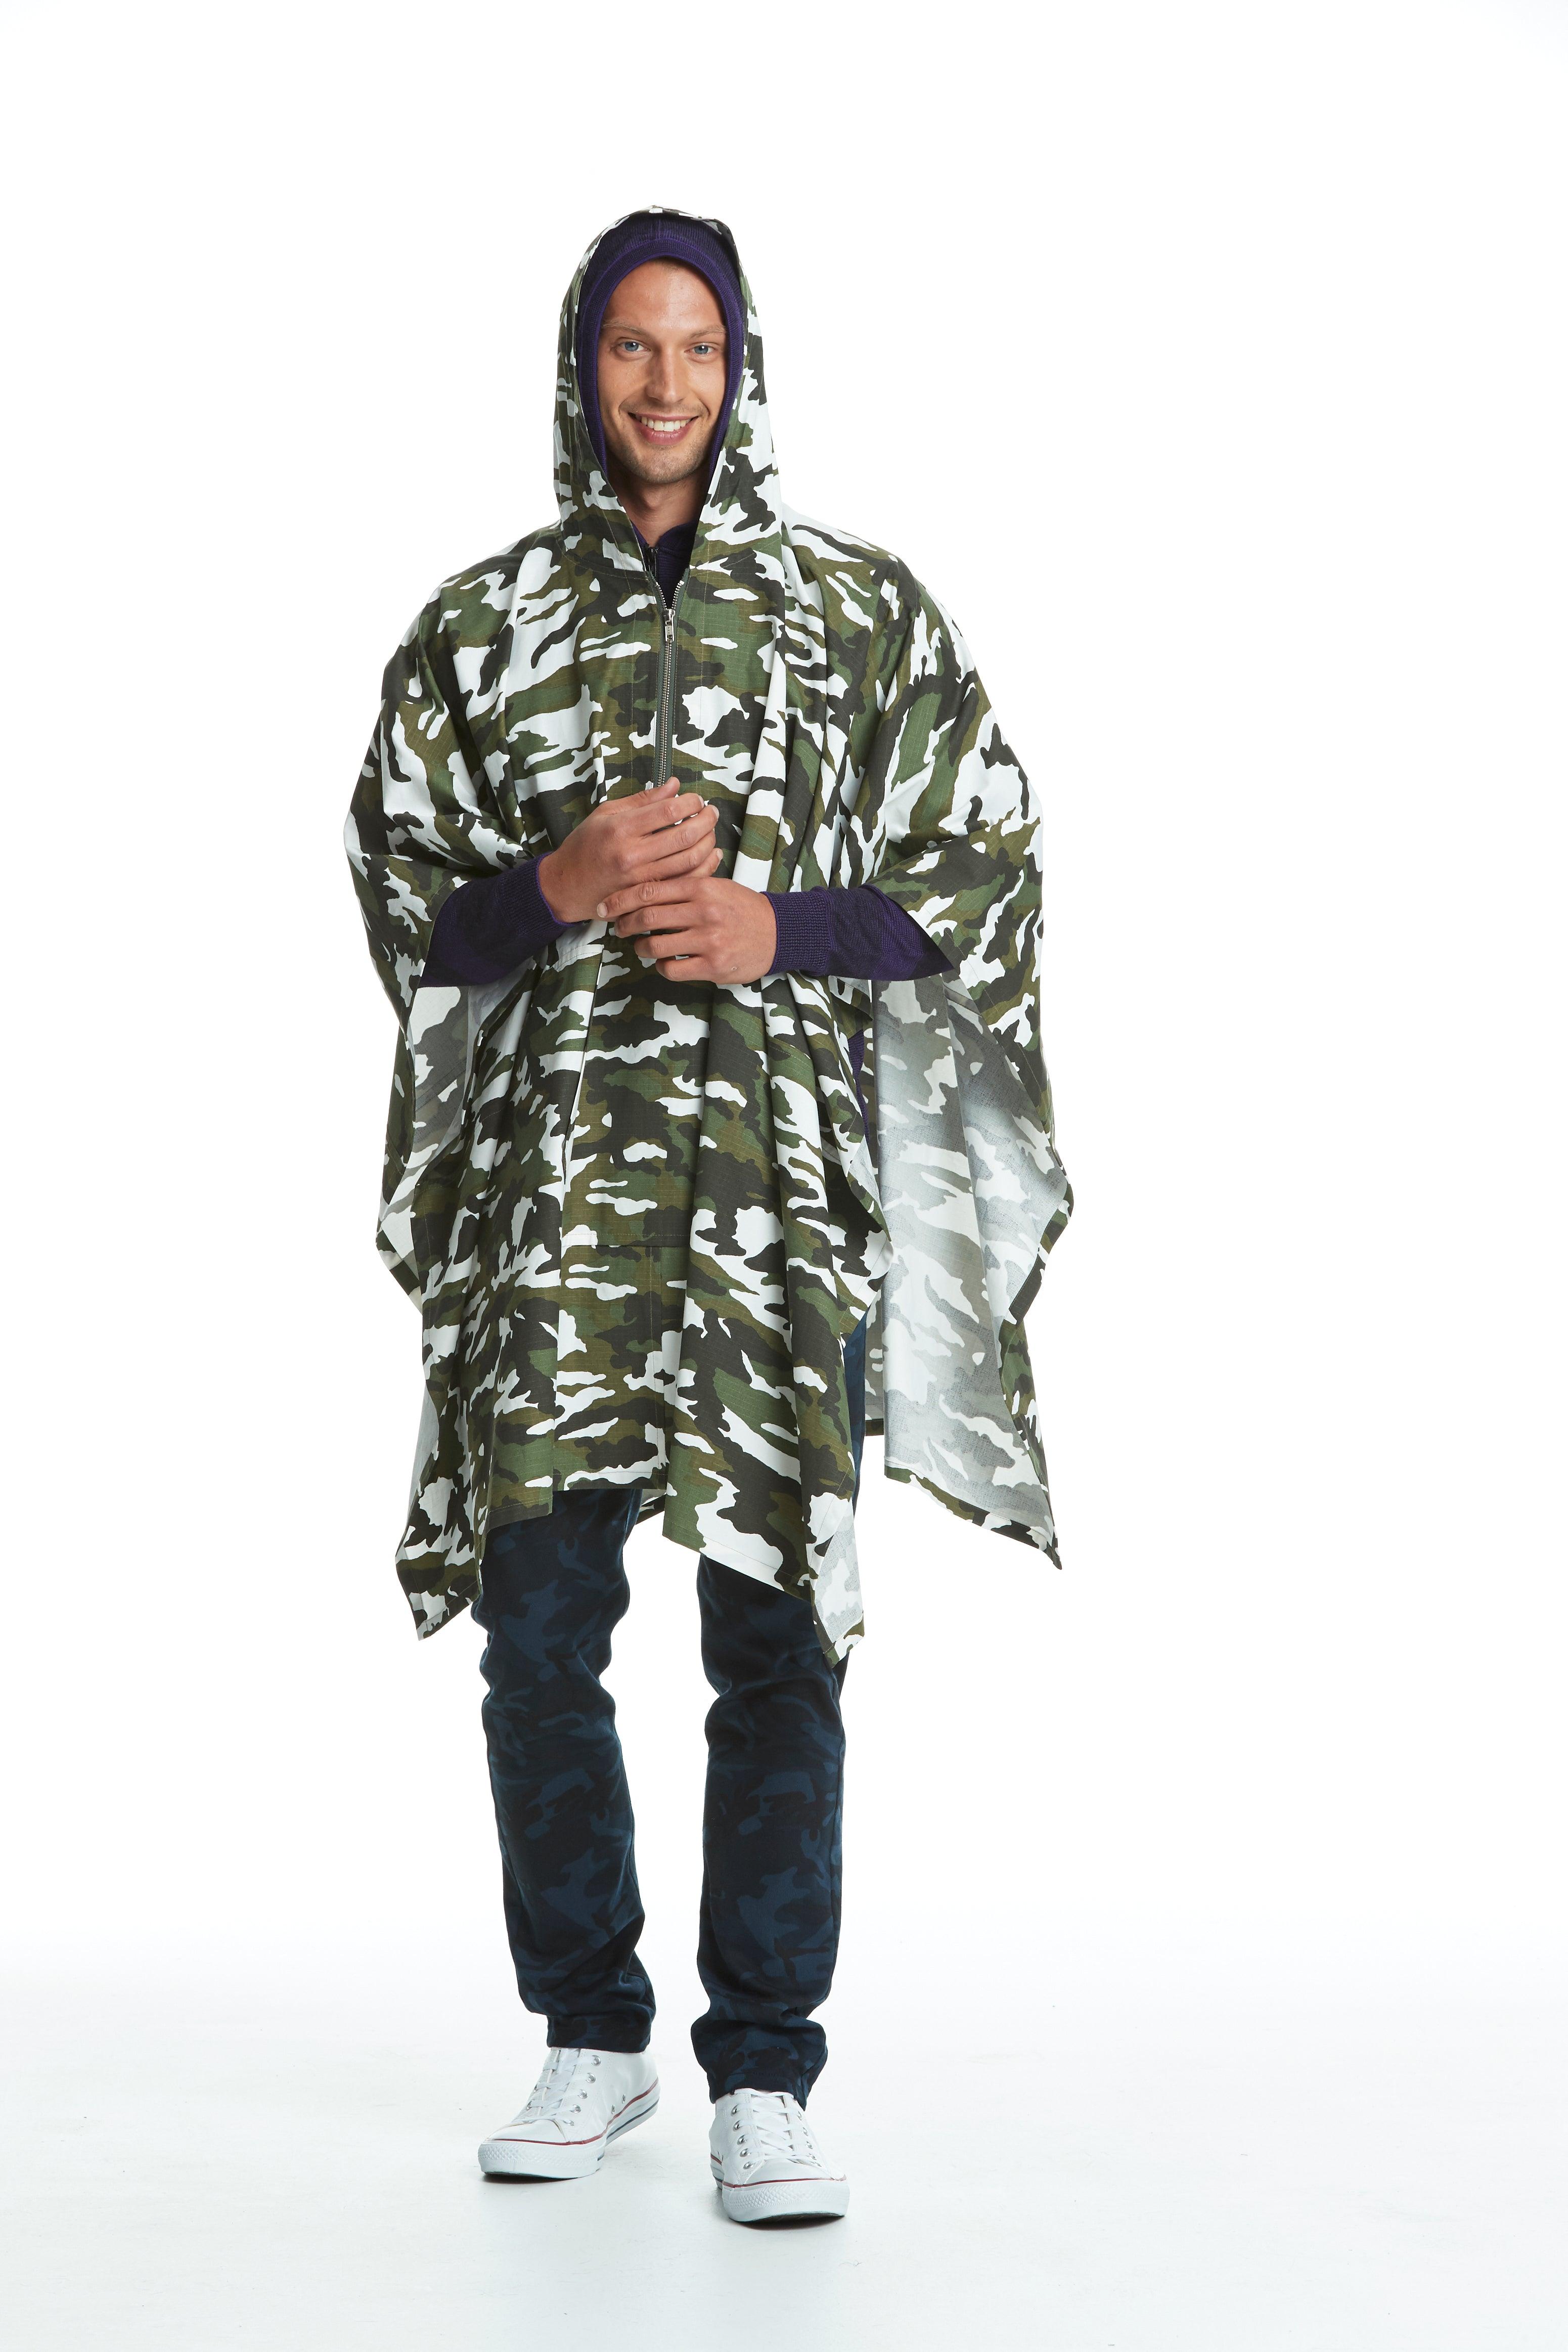 WORLDman 4481 Cassidy Shirt Green Camo